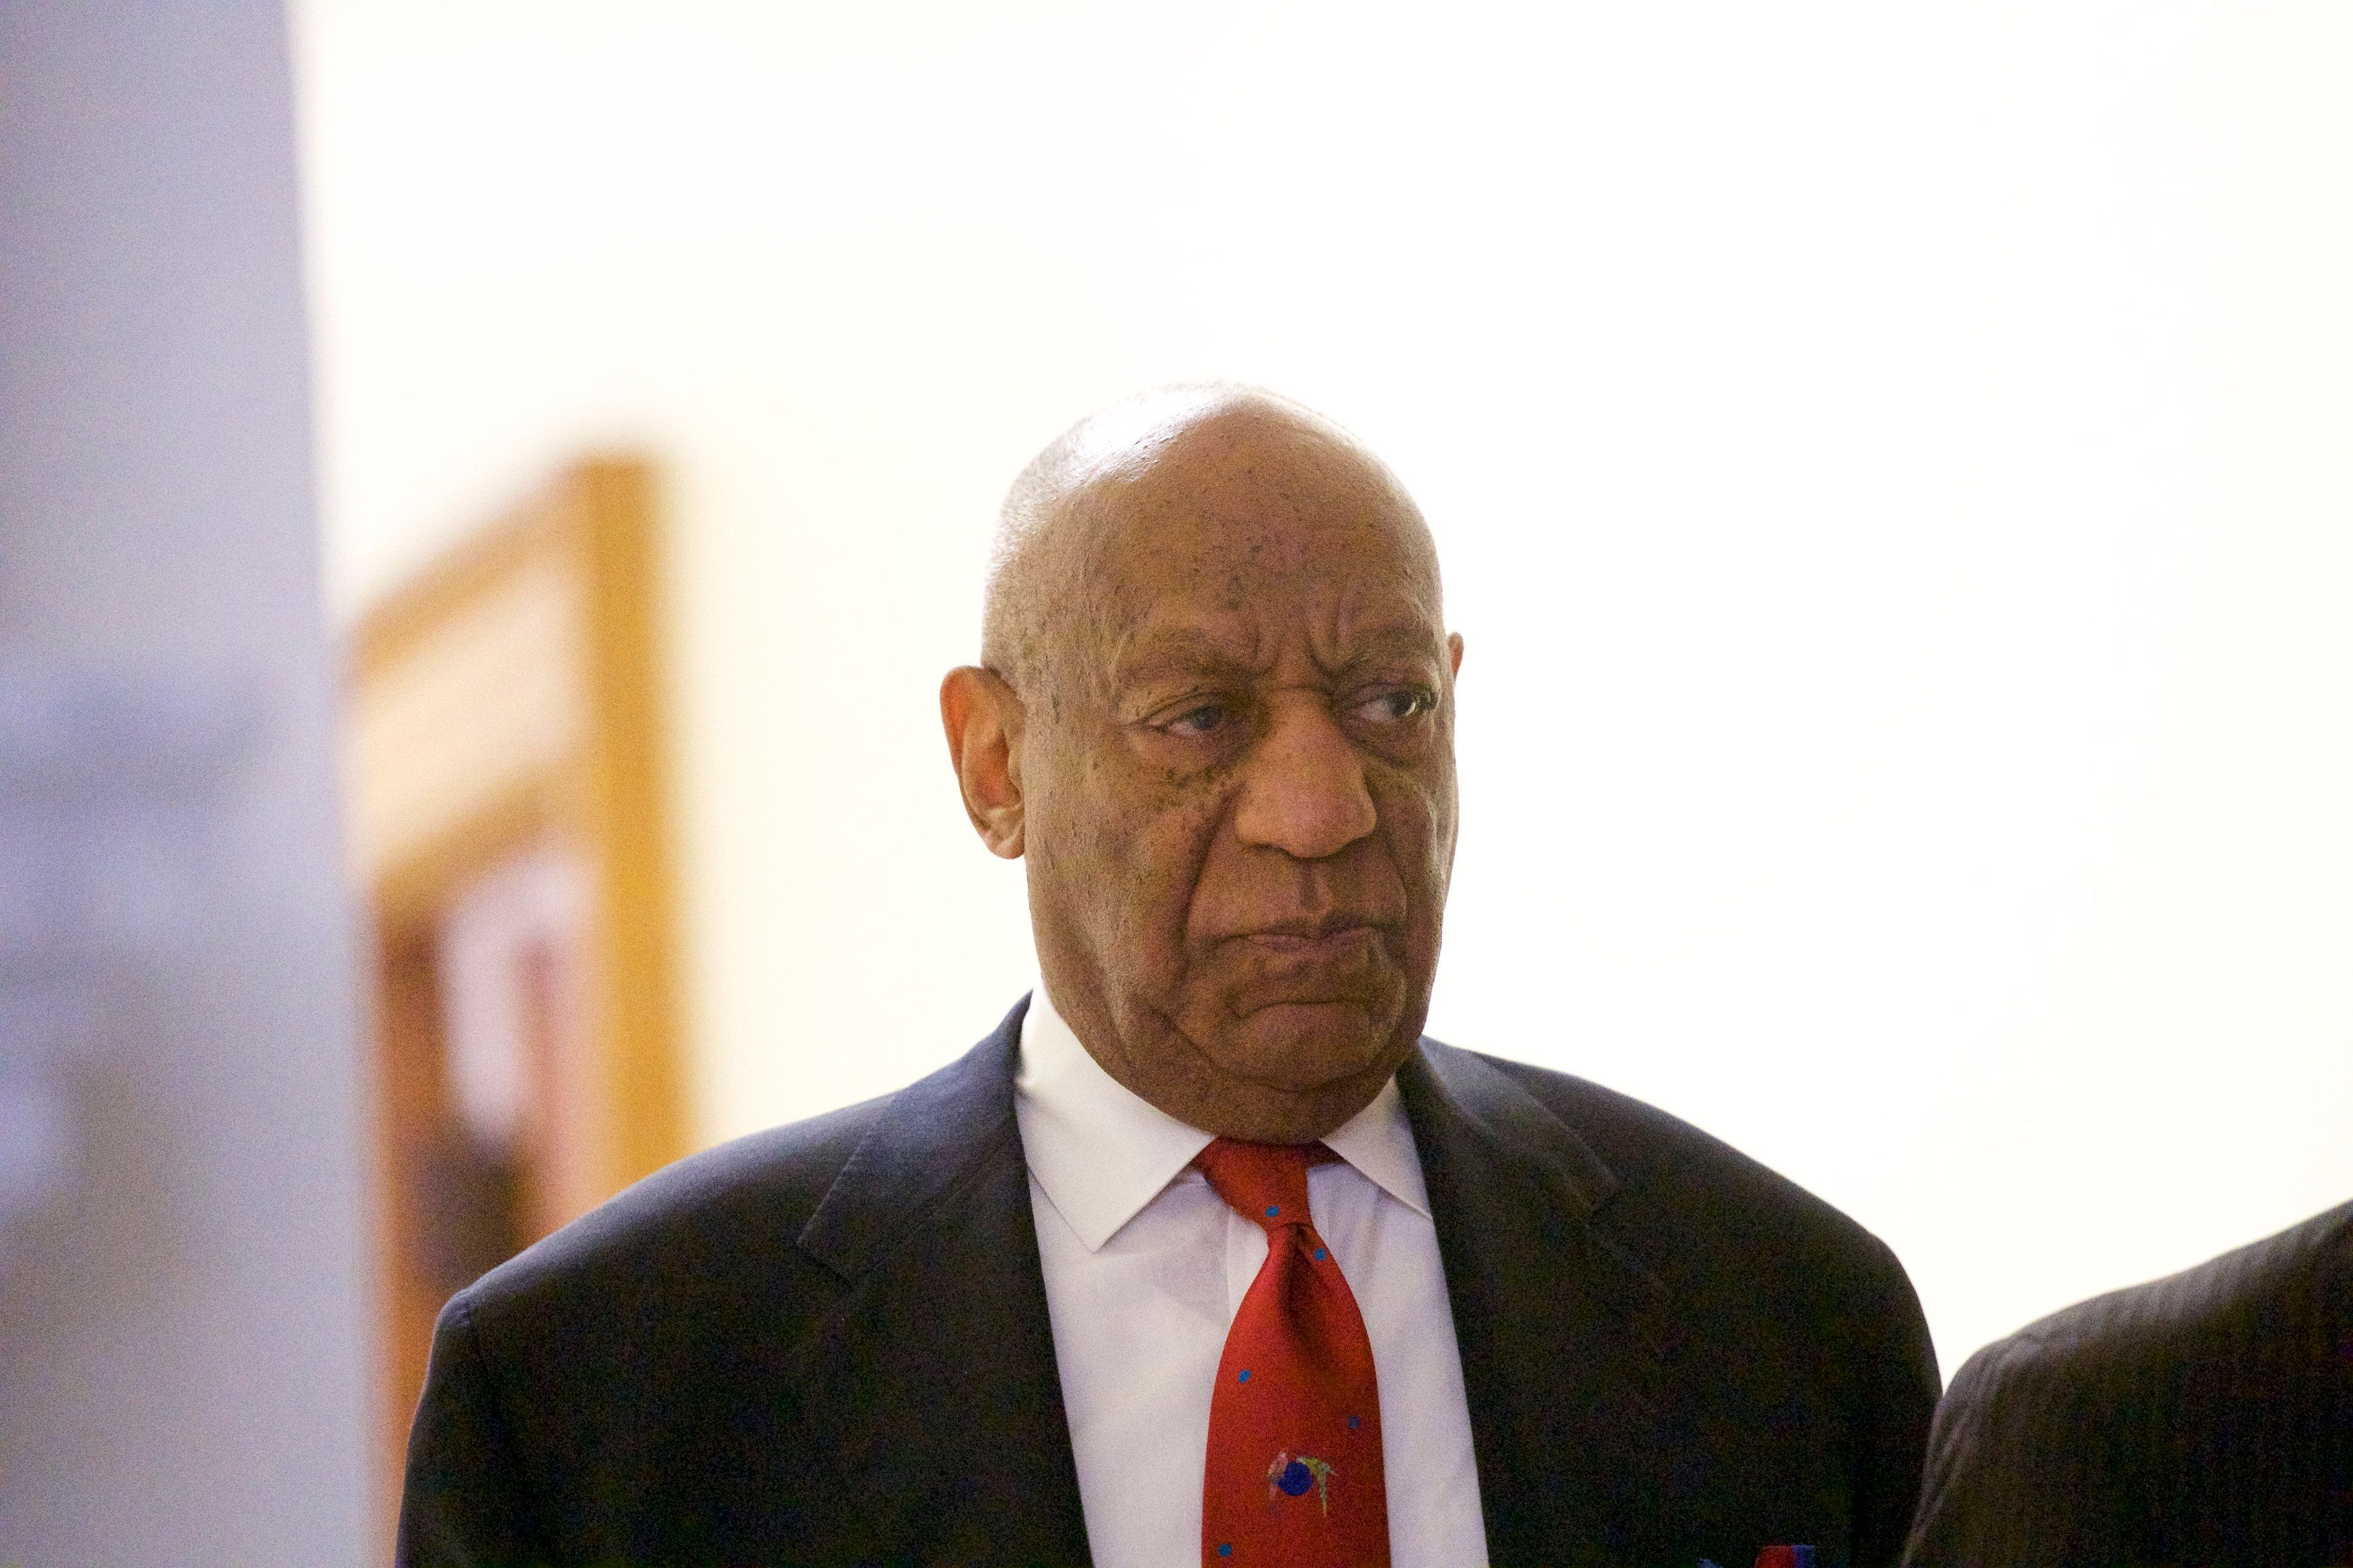 Bill Cosby walks out of court in Norristown, Pennsylvania, on April 26 after being found guilty of sexual assault.